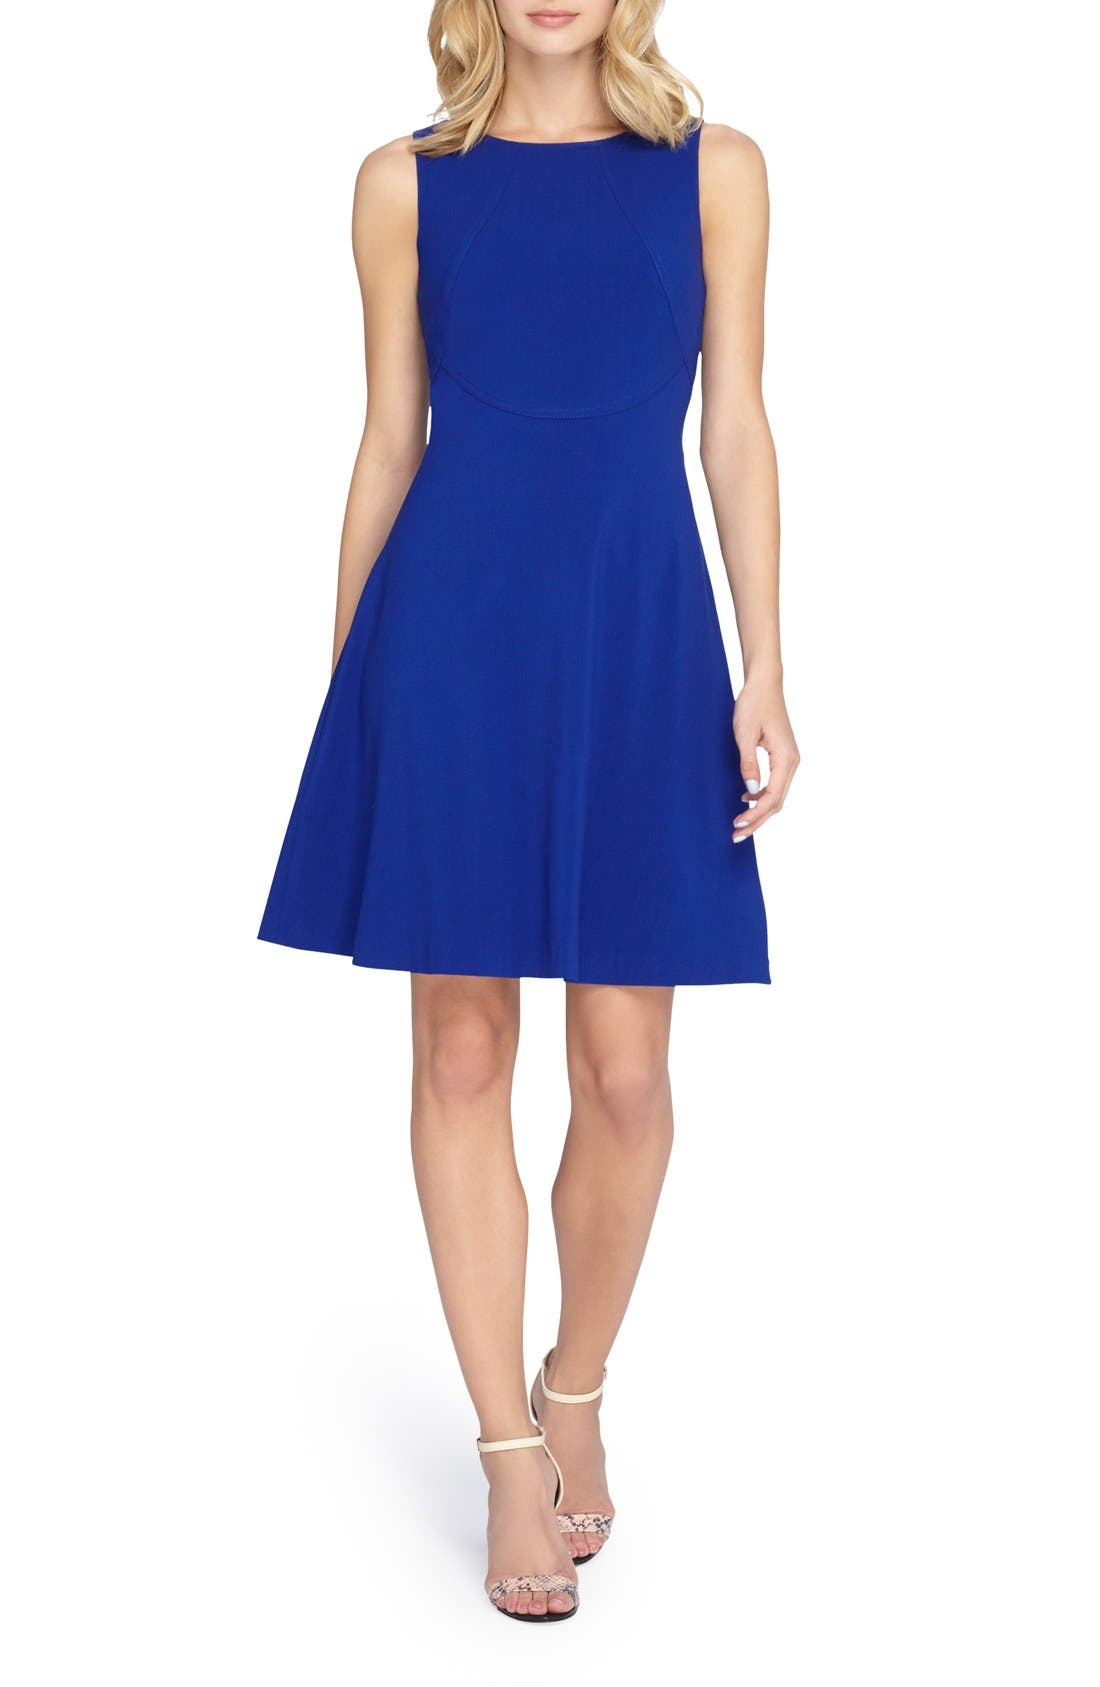 Tahari Sleeveless A-Line Dress (Petite)